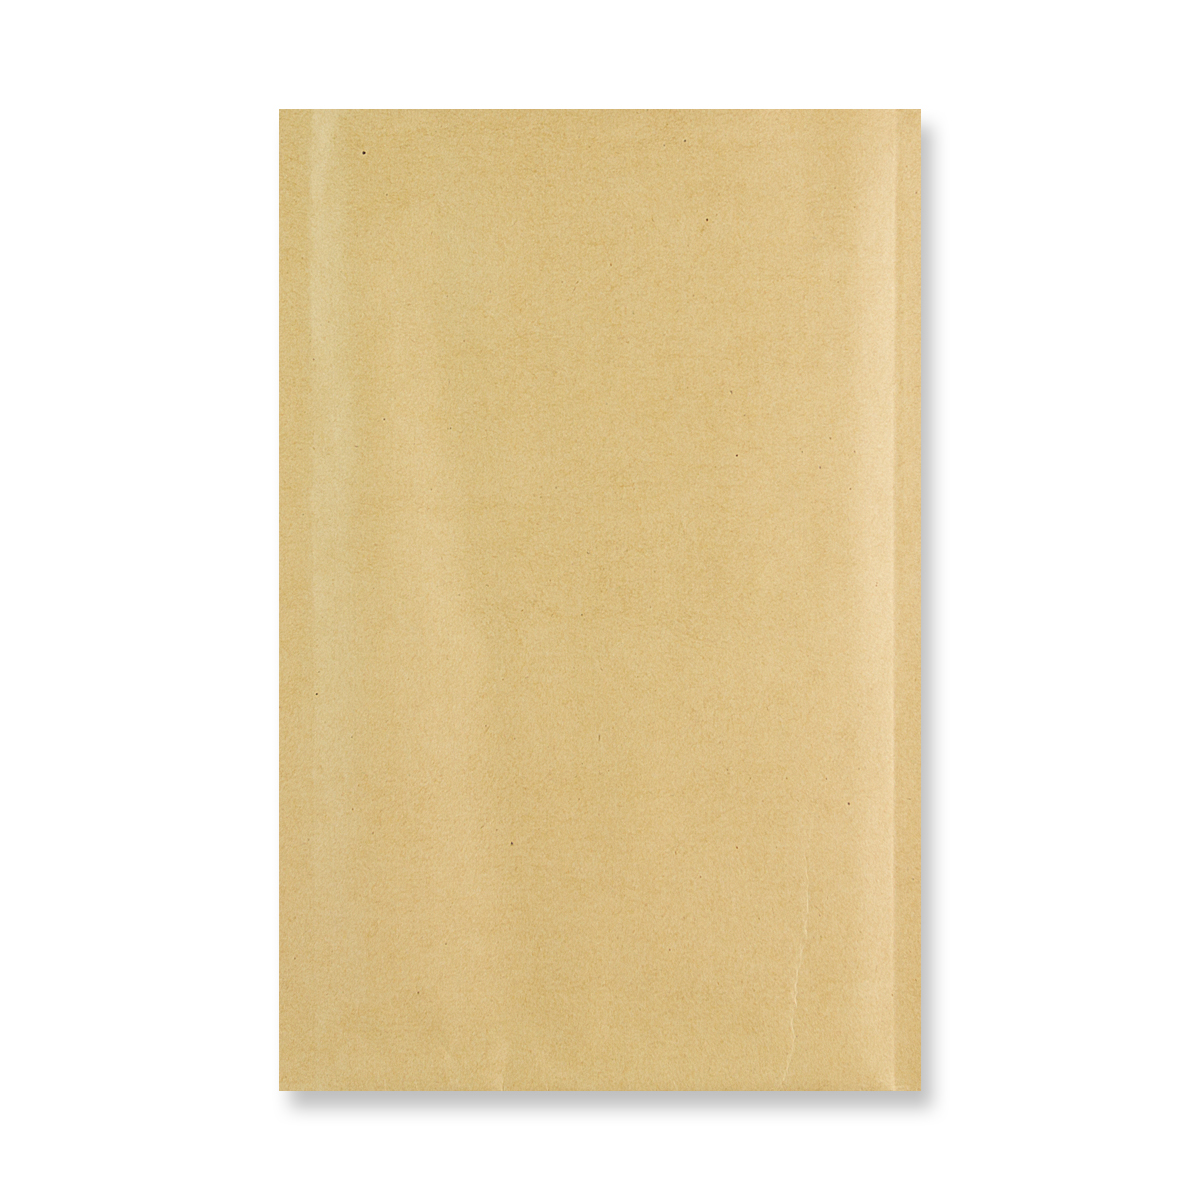 265 x 180mm MANILLA BUBBLE BAG ENVELOPES